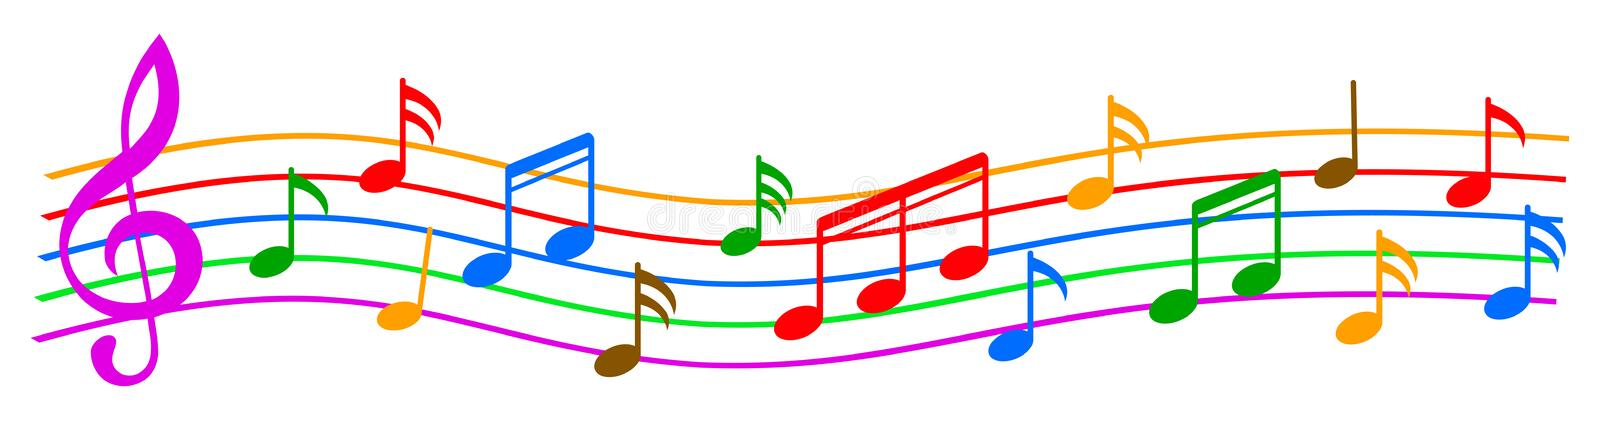 Music notes, colorful group musical notes - vector. Music notes, colorful group musical notes – stock vector royalty free illustration